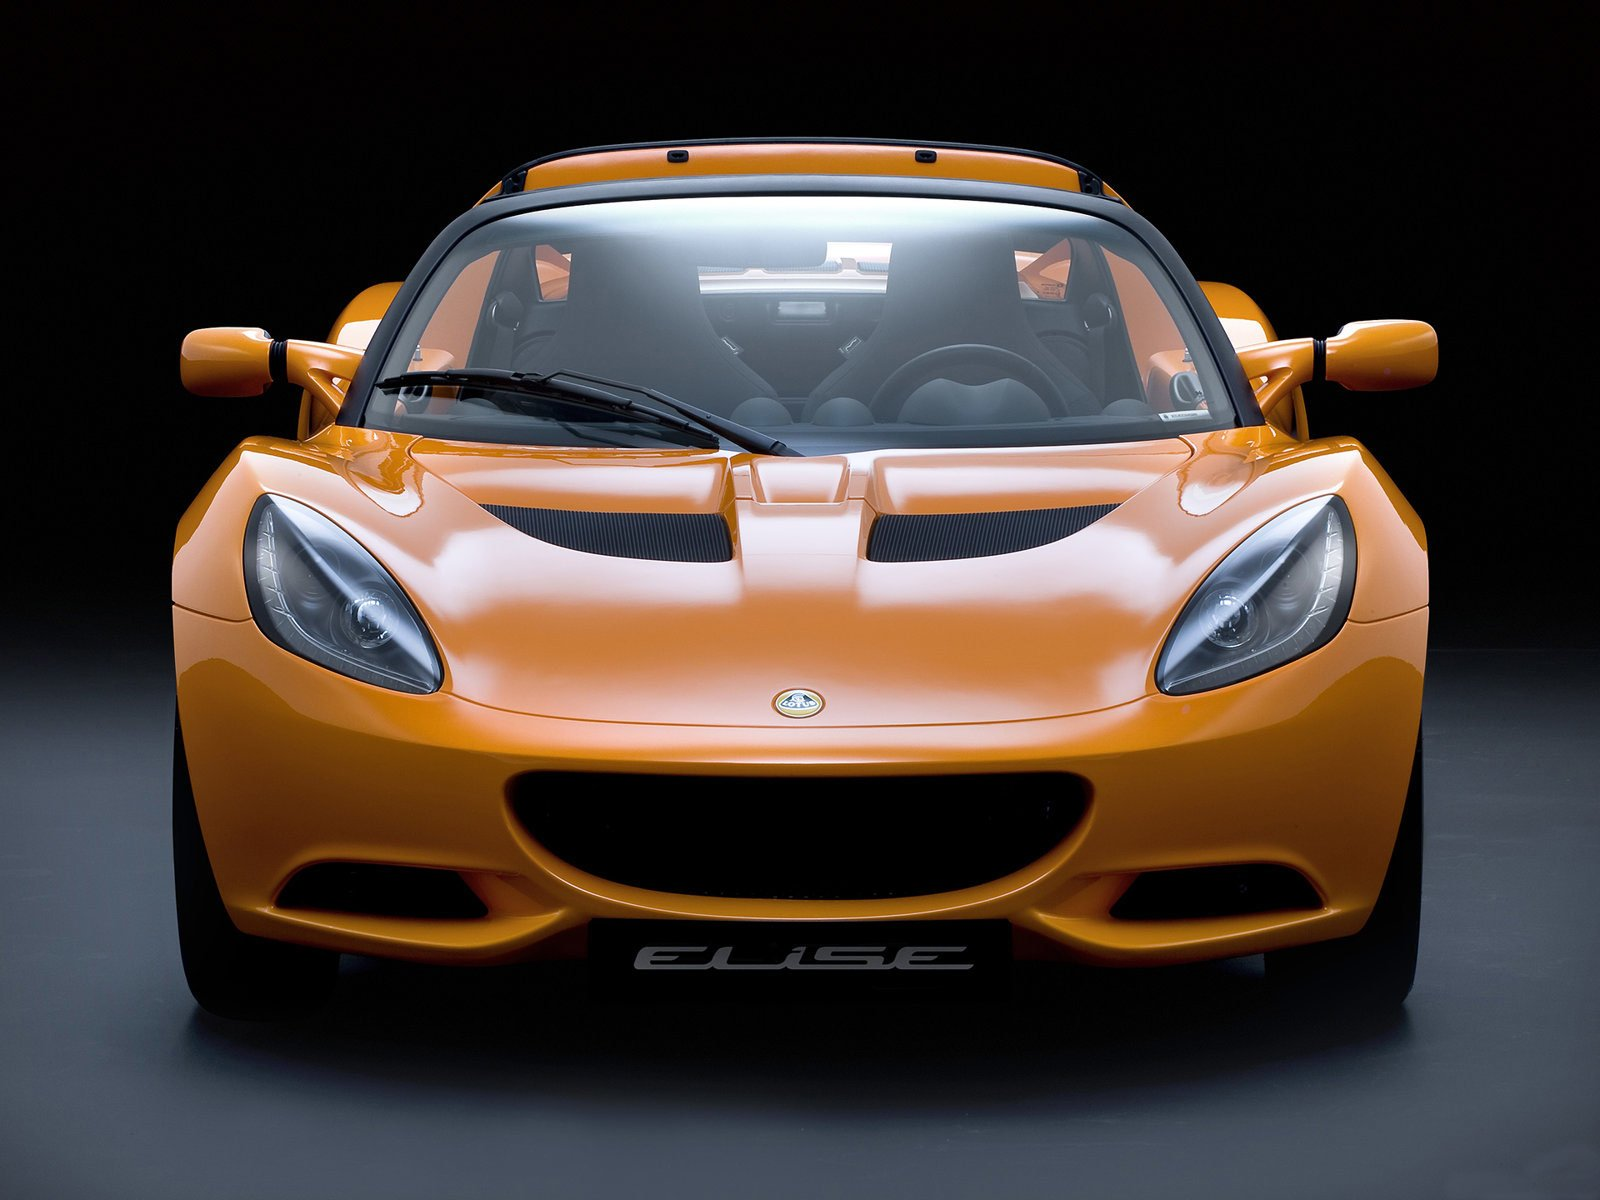 Latest 2011 Lotus Elise Wallpapers Car Review Free Download